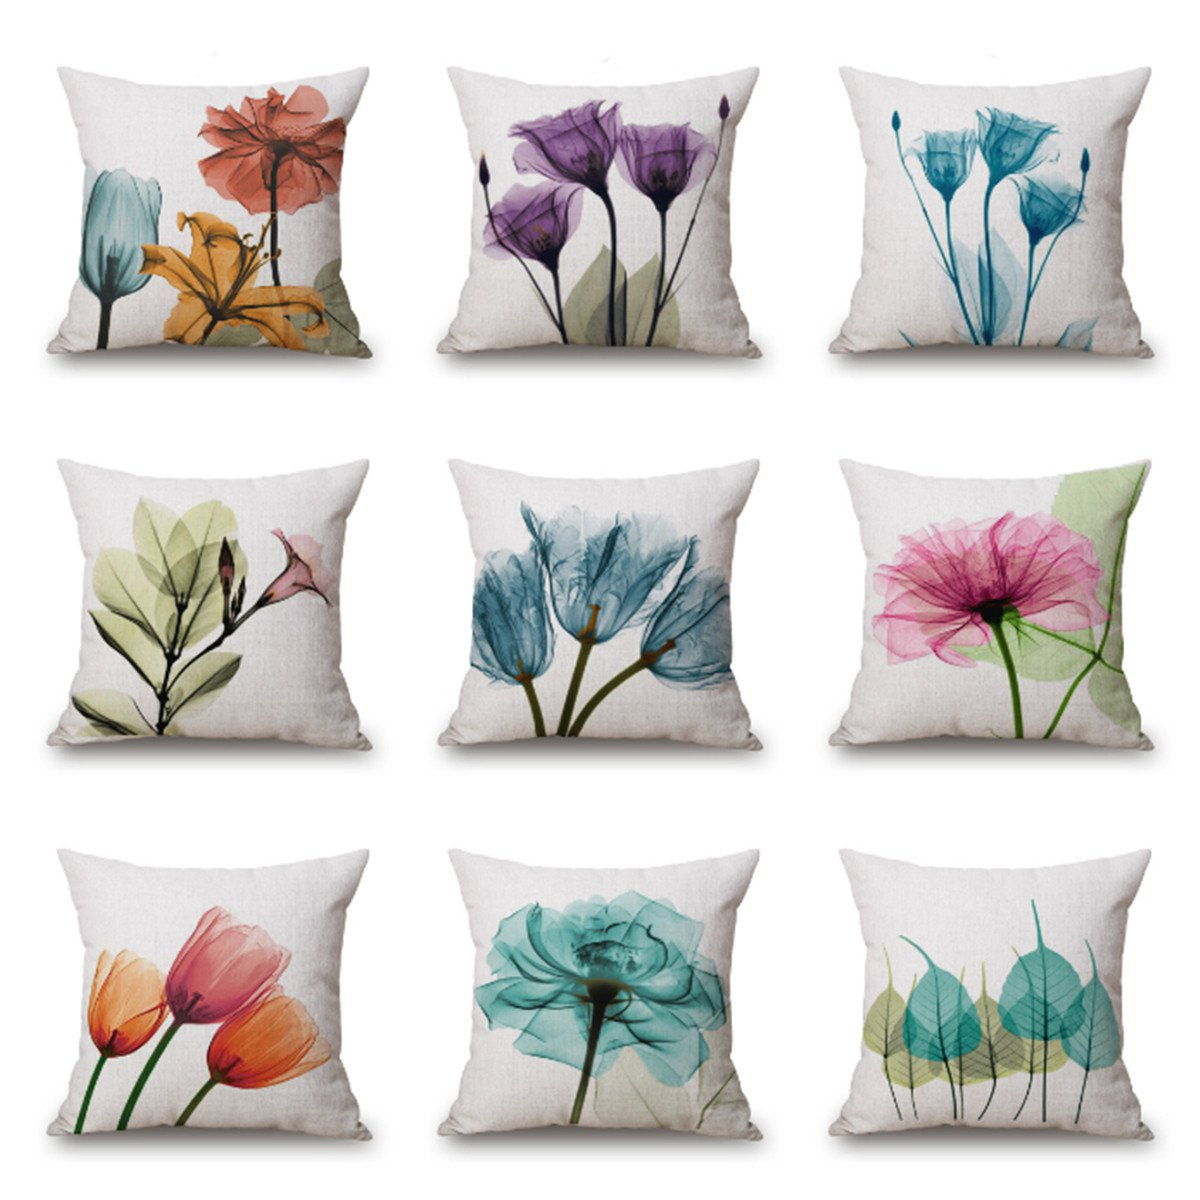 Flowers Throw Pillow Covers Cotton Linen Square Decorative Throw Pillow Case Cushion Cover Enchanting Beautiful Flowers Gift Anniversary Day Present 18 X18 Walmart Com Walmart Com